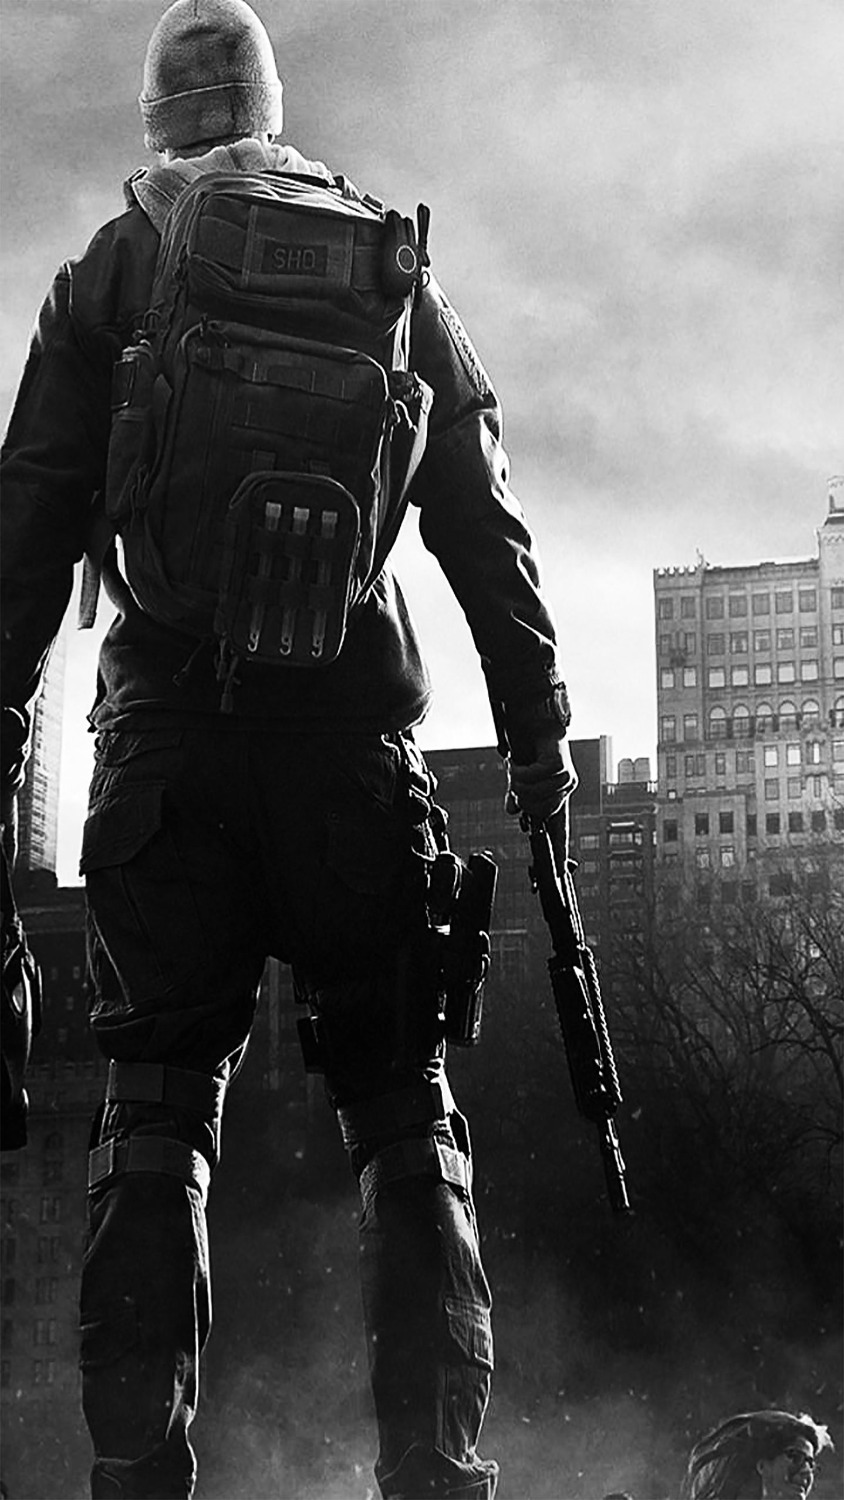 2017 New Arrival Tom Clancys The Division Art Canvas Poster Canvas Print New Shooting Game Pictures for Home Wall Decor image